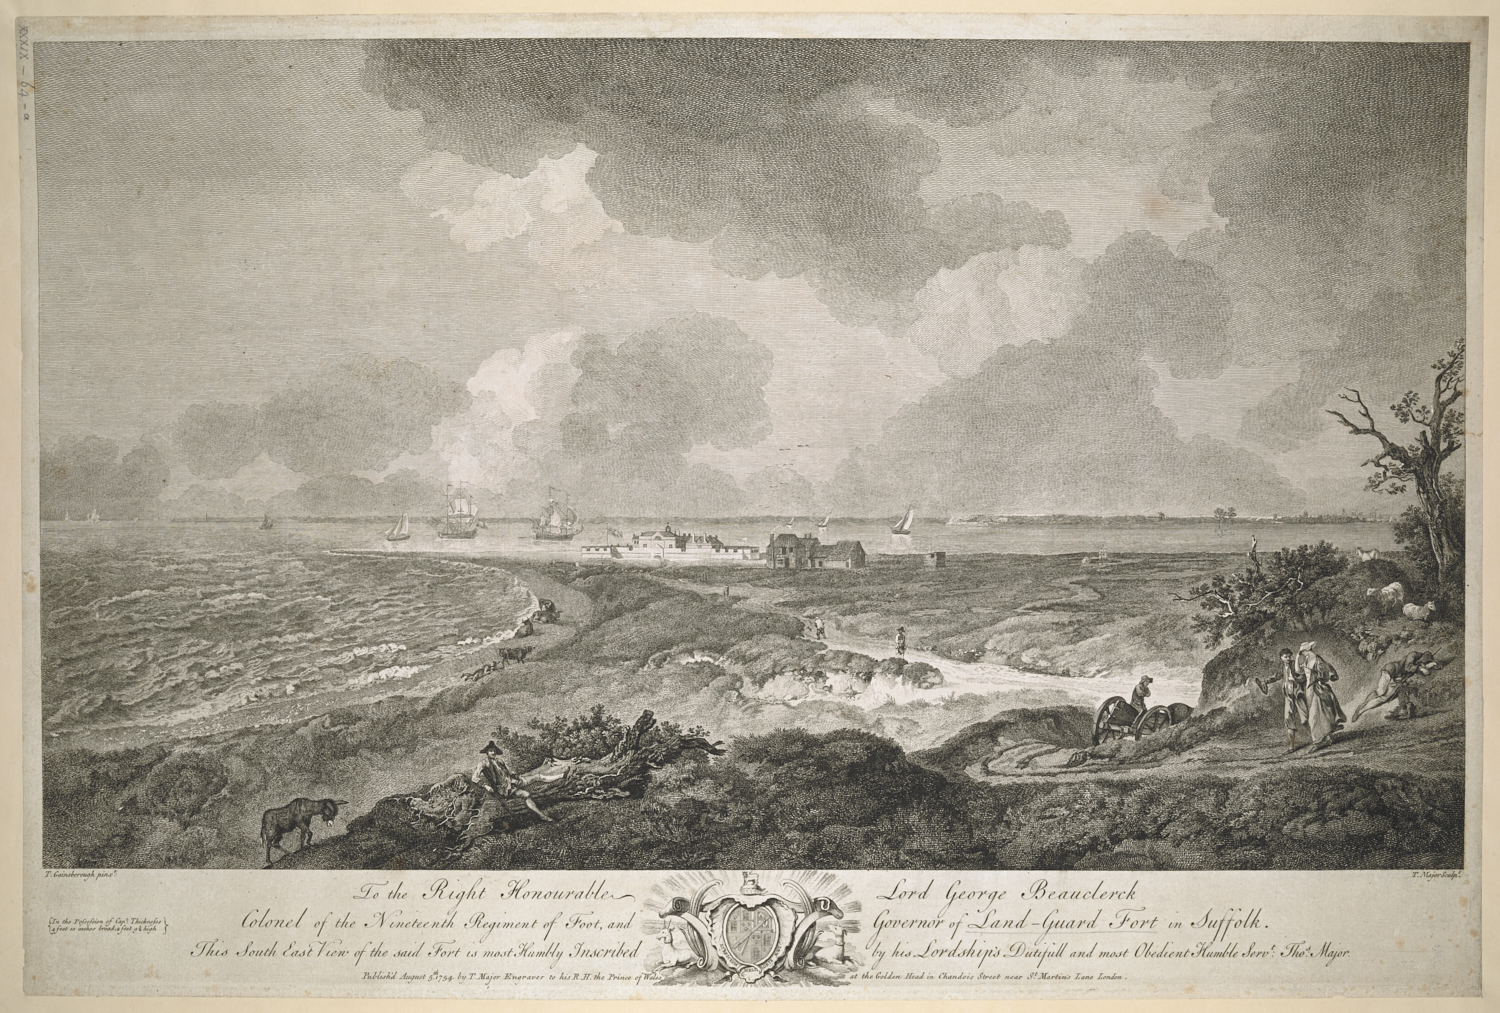 Thomas Major (1720-99) after Thomas Gainsborough (1727-88), S.E. View of Landguard Fort, London, Thomas Major, 5 August, 1754, etching and engraving, platemark 406 x 607 mm, image 343 x 592 mm, Maps K.Top.39.64.a.